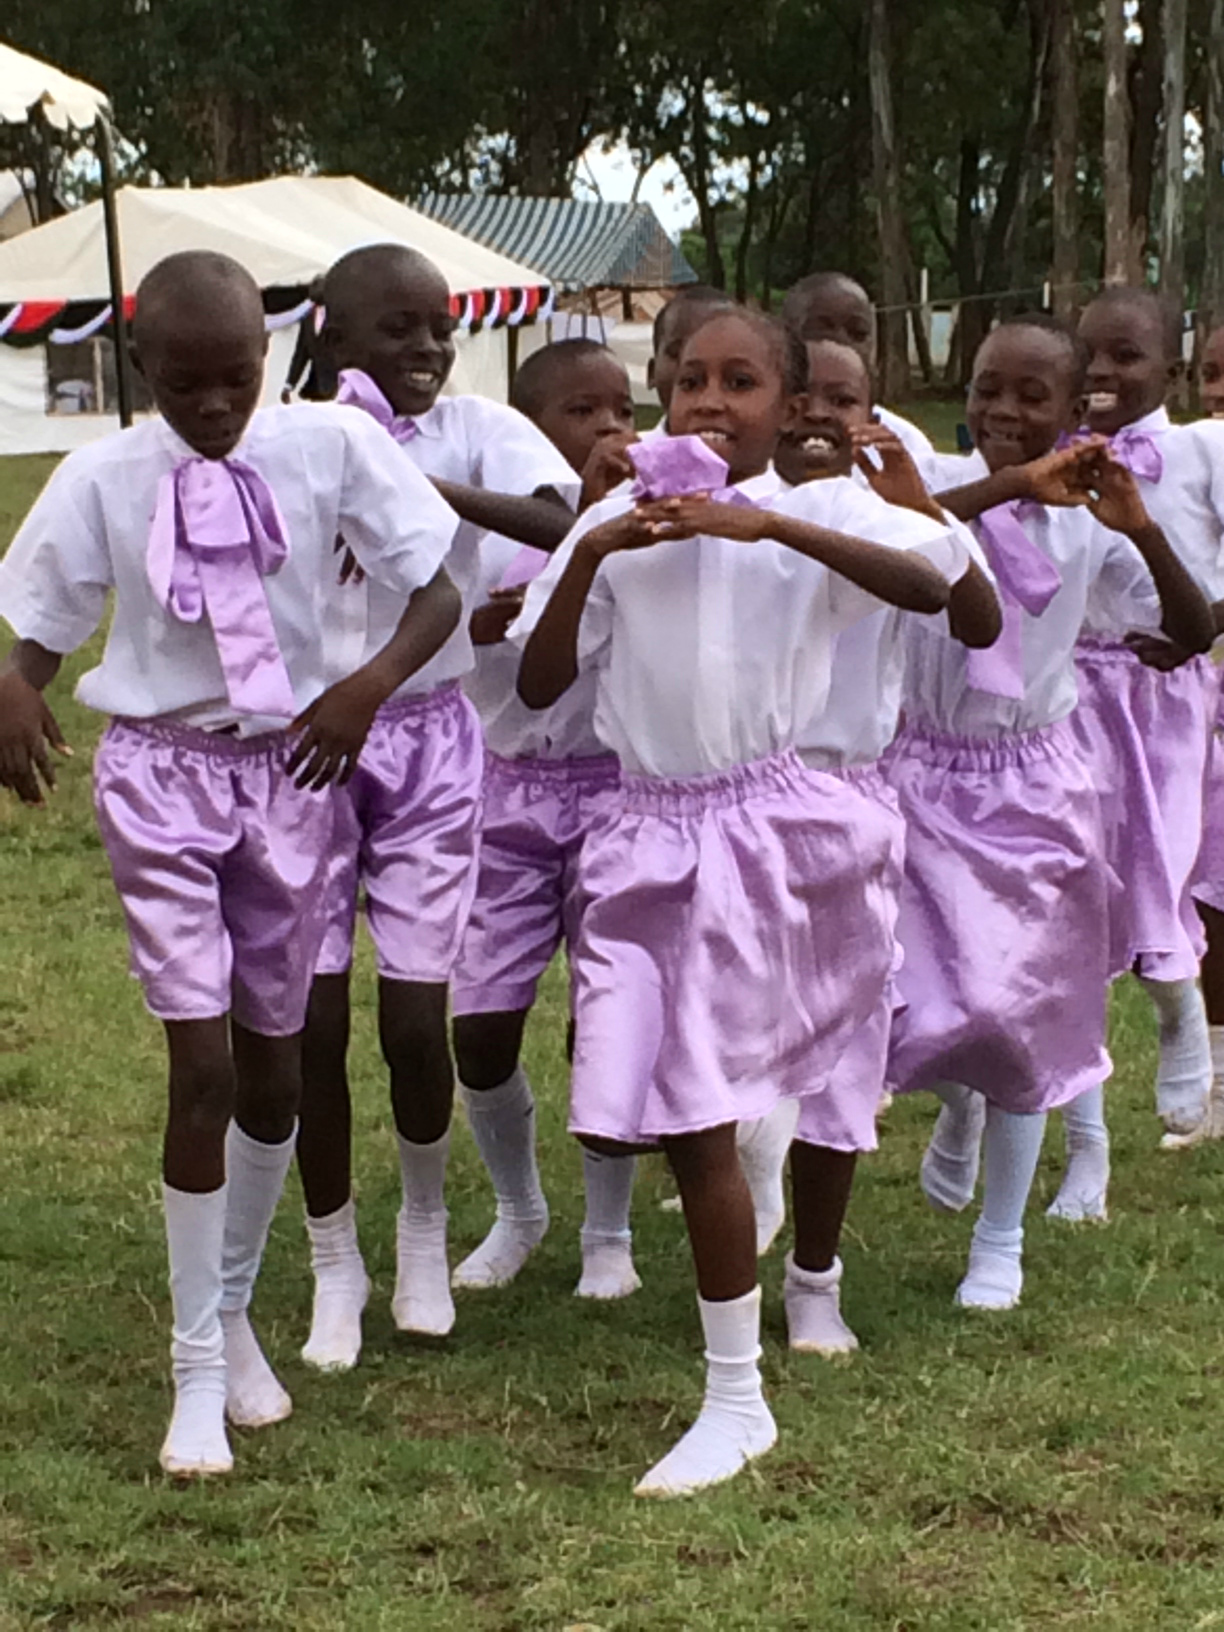 Two lines of Kenyan children wearing purple shorts march across a field